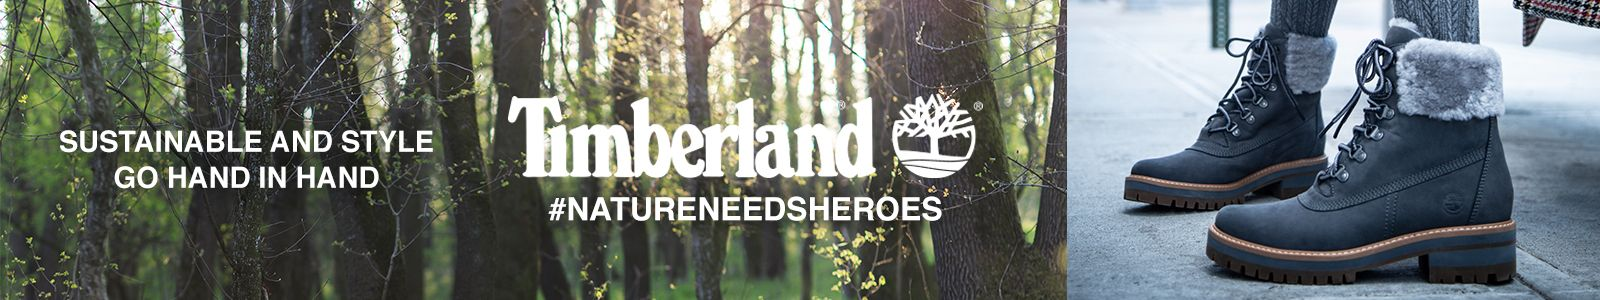 Sustainable and style go Hand in Hand, Timberland